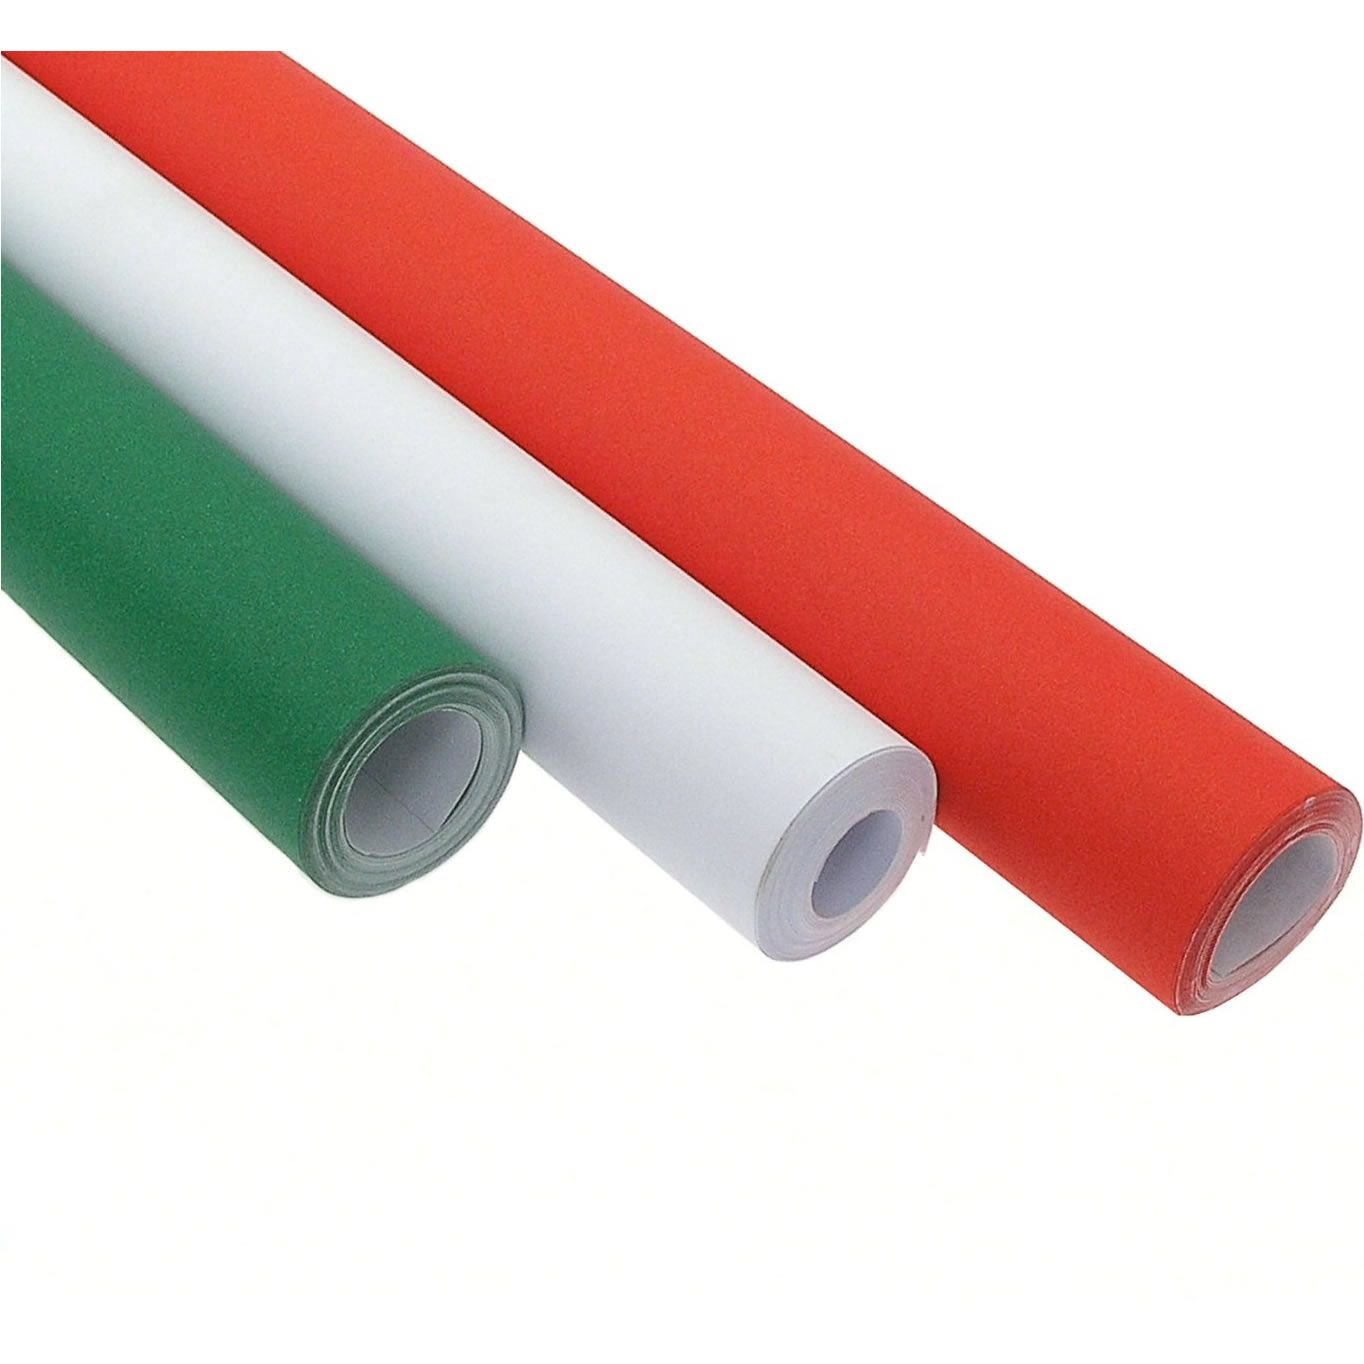 Poster Roll 10m Selection Red, White and Green